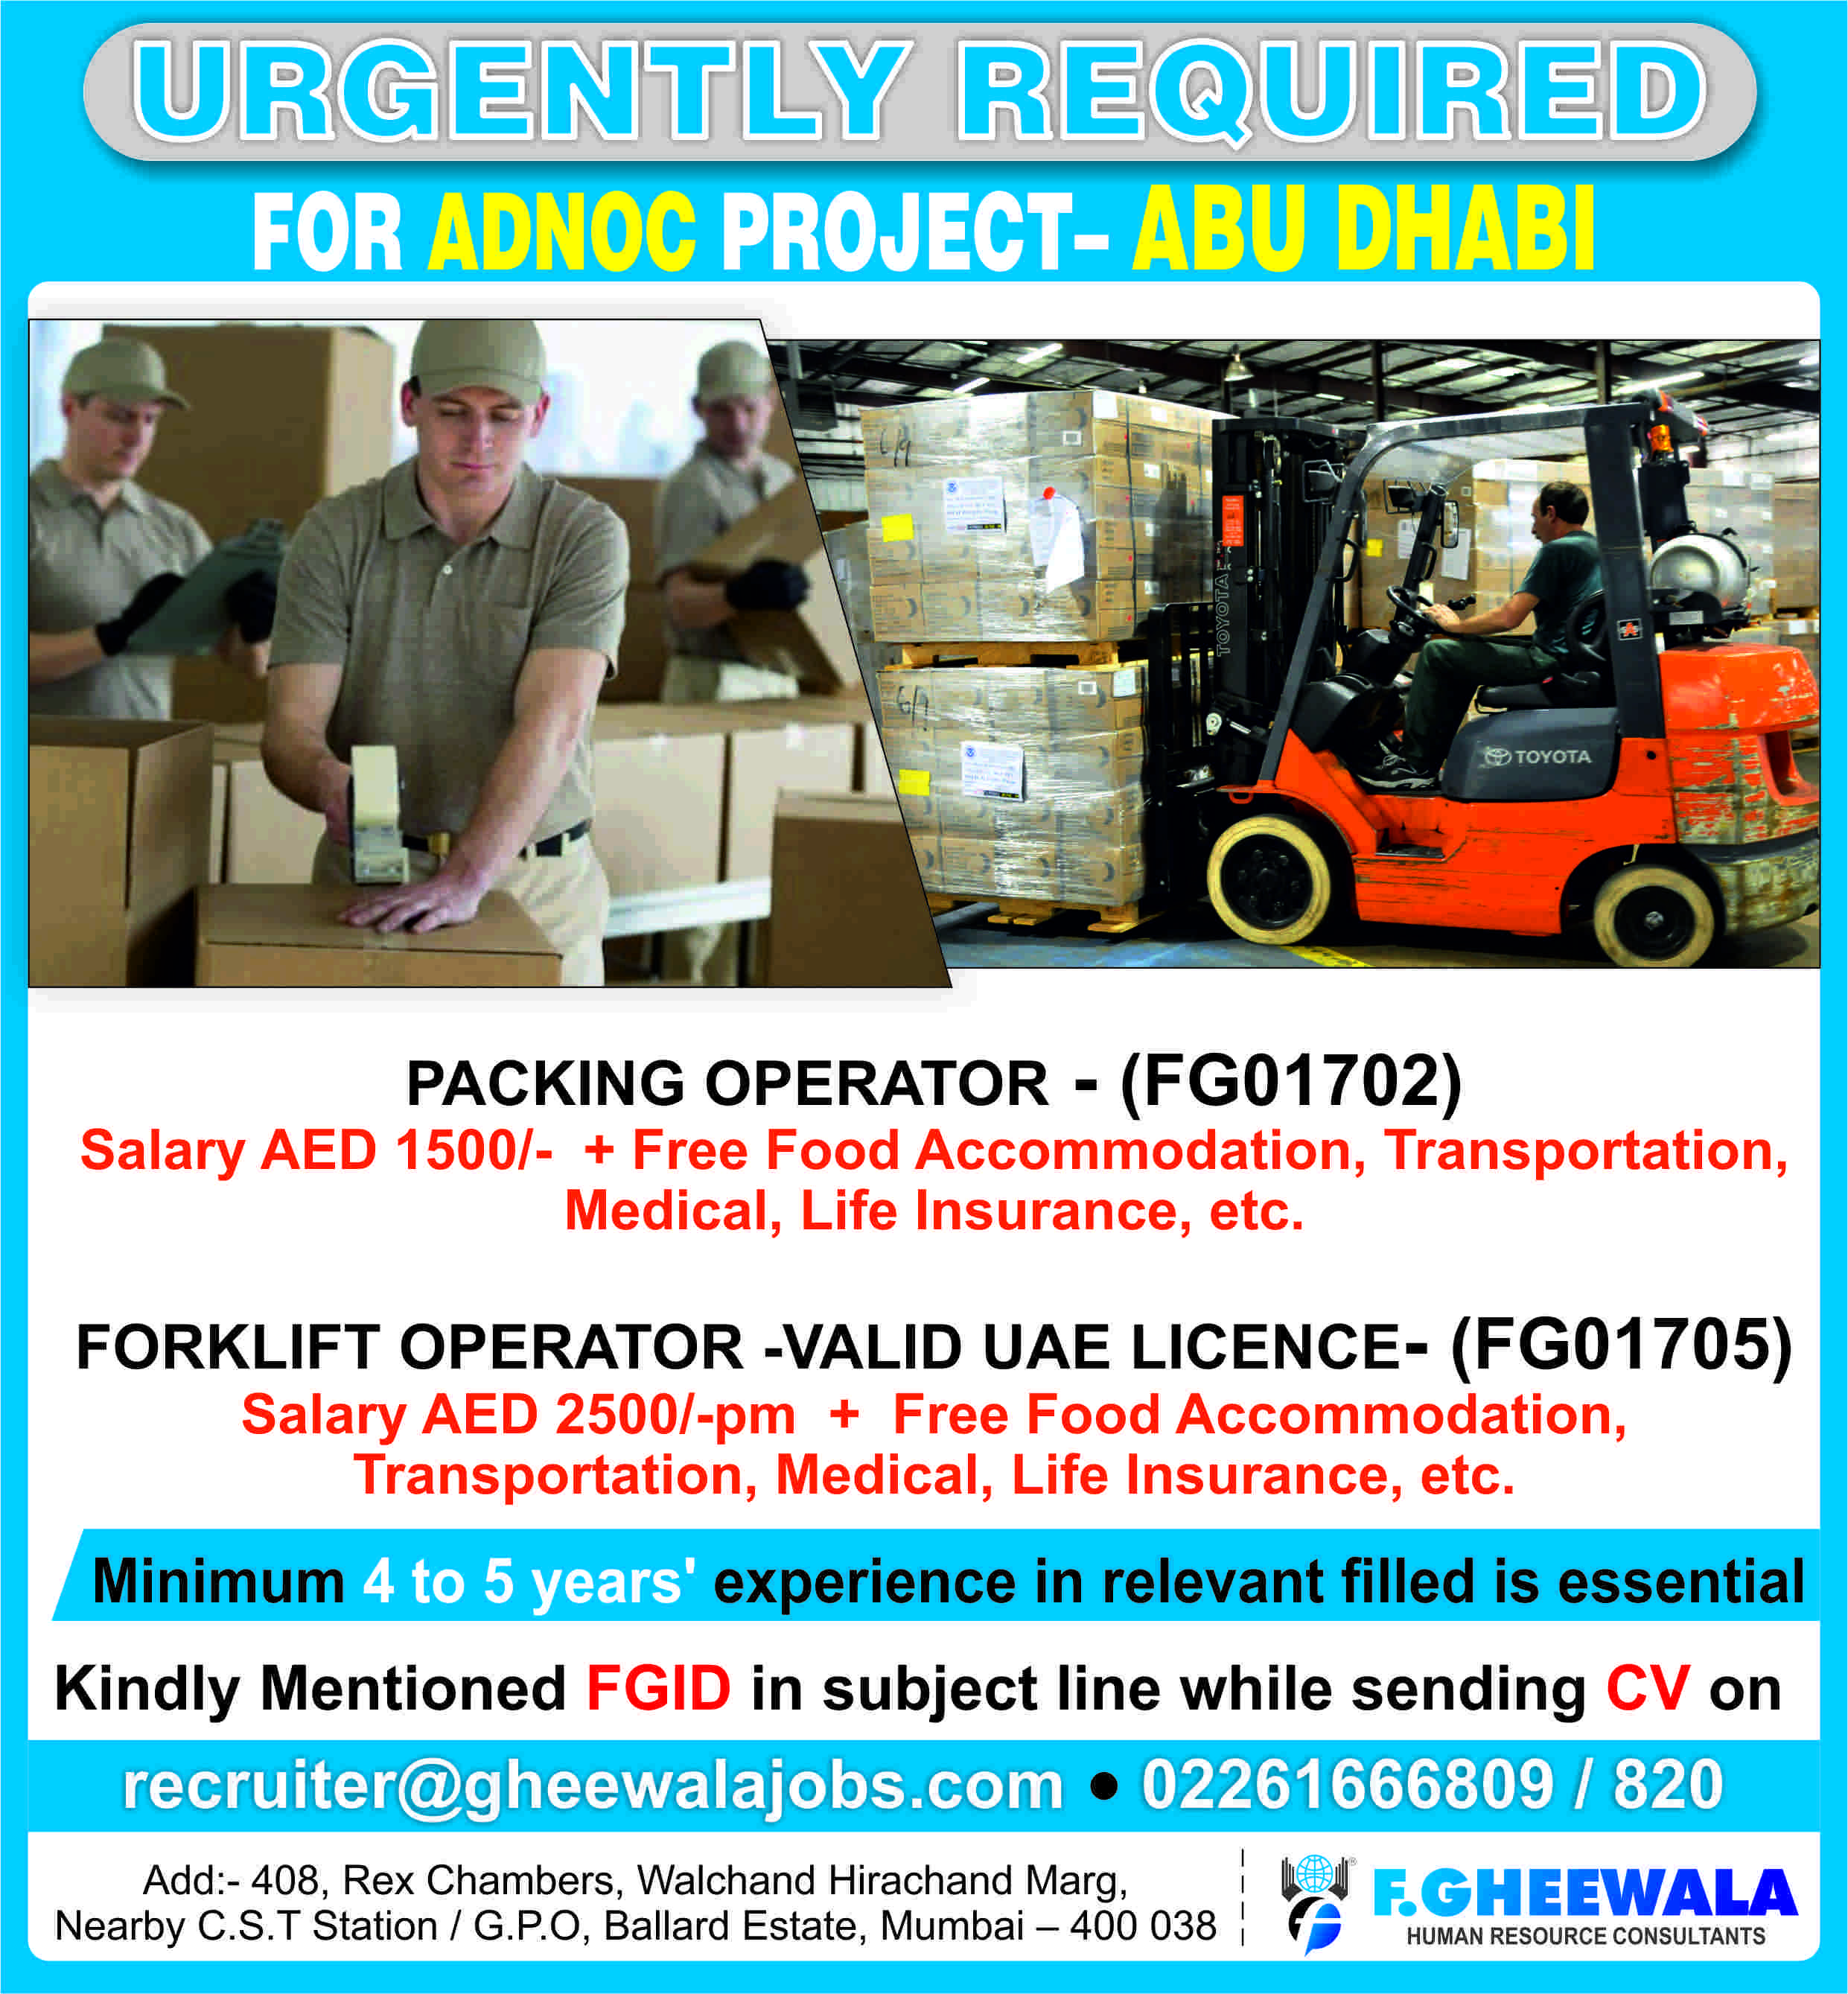 Urgently Required Packing Operator & Forklift Operator for ADNOC